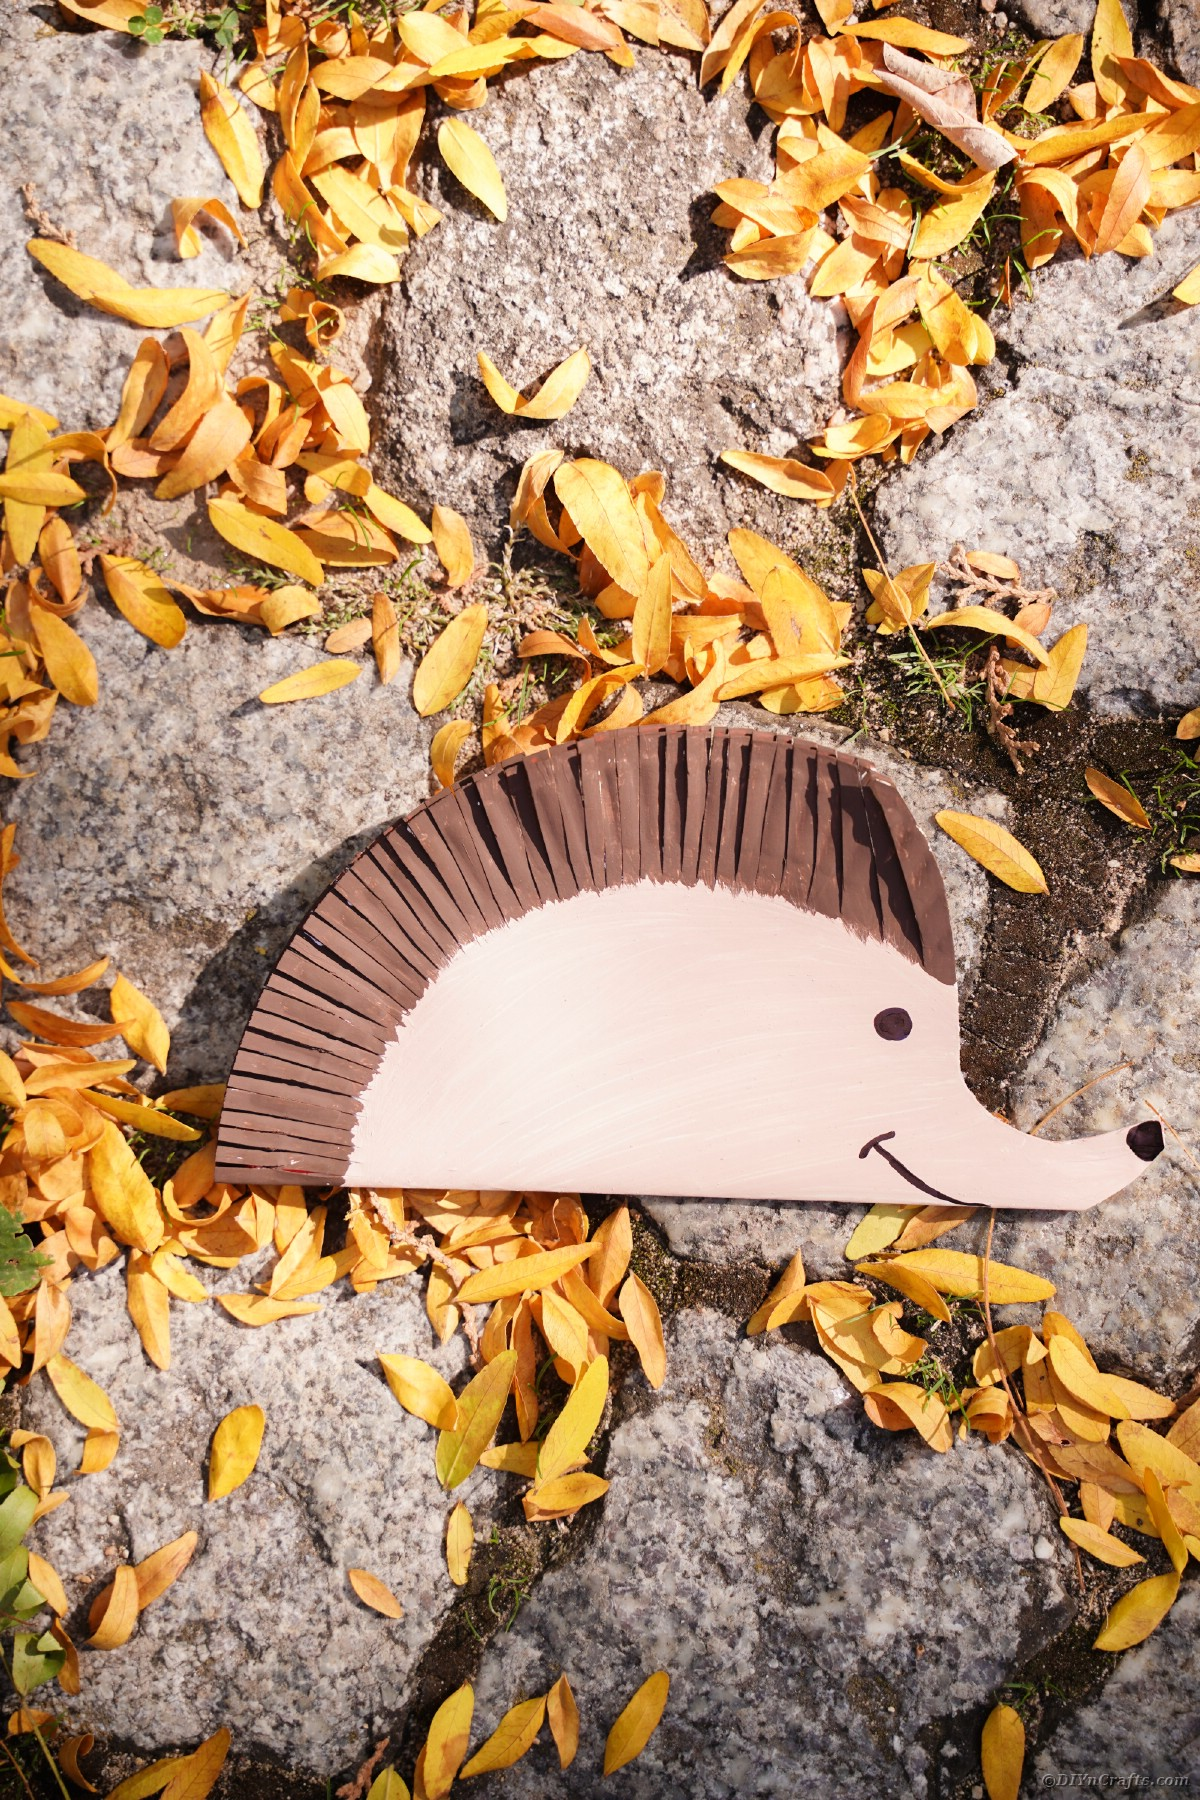 Paper hedgehog decoration on cobblestones with dry leaves